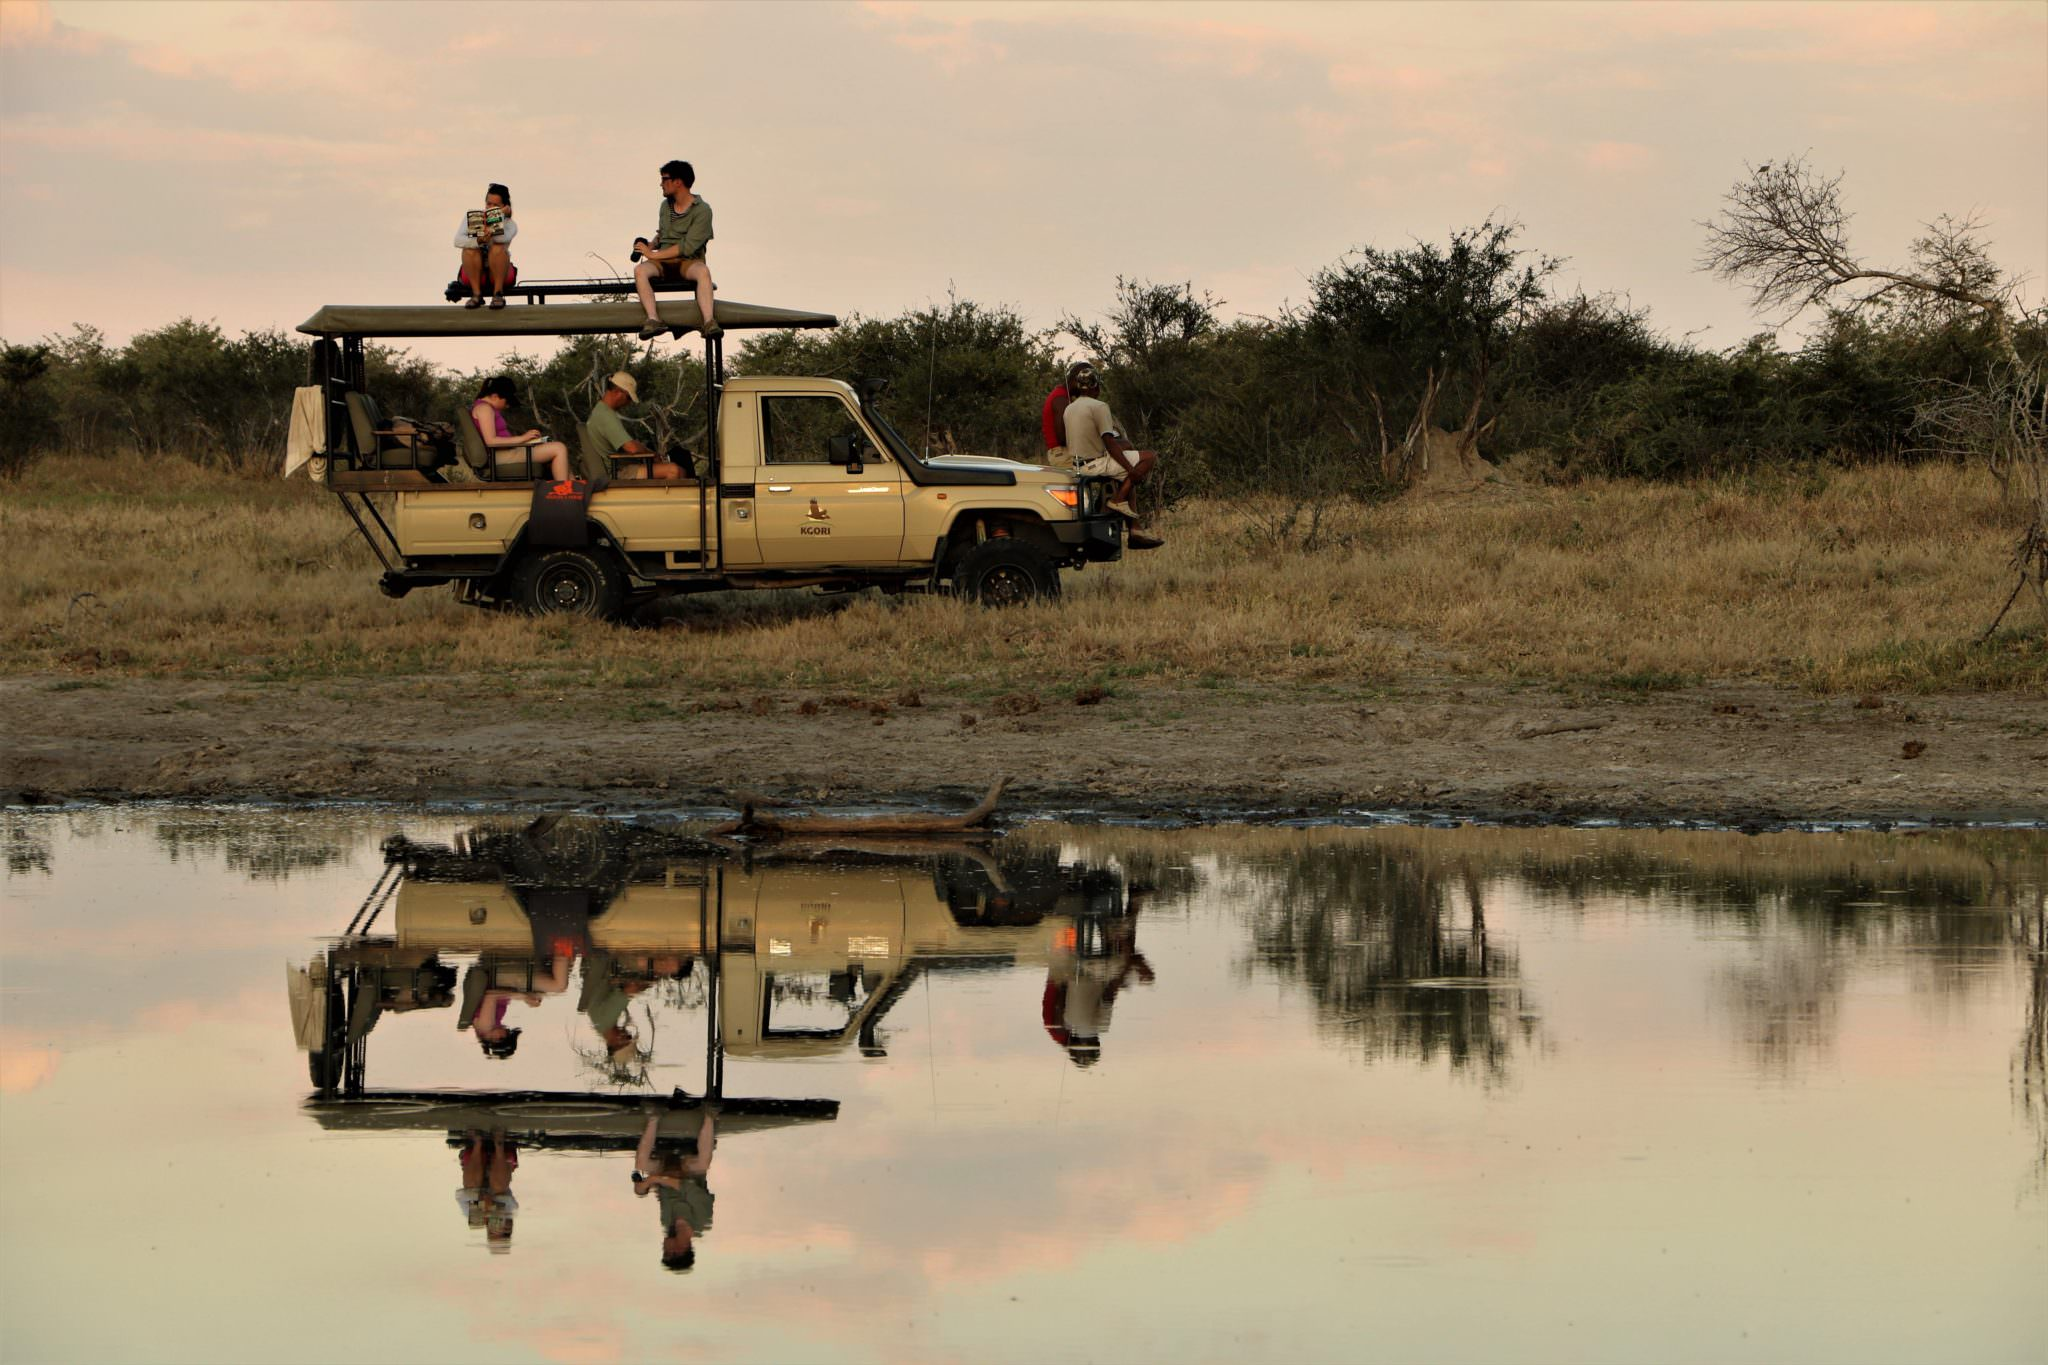 A group of conservation volunteers sitting on top of a jeep next to a lake in the African bush